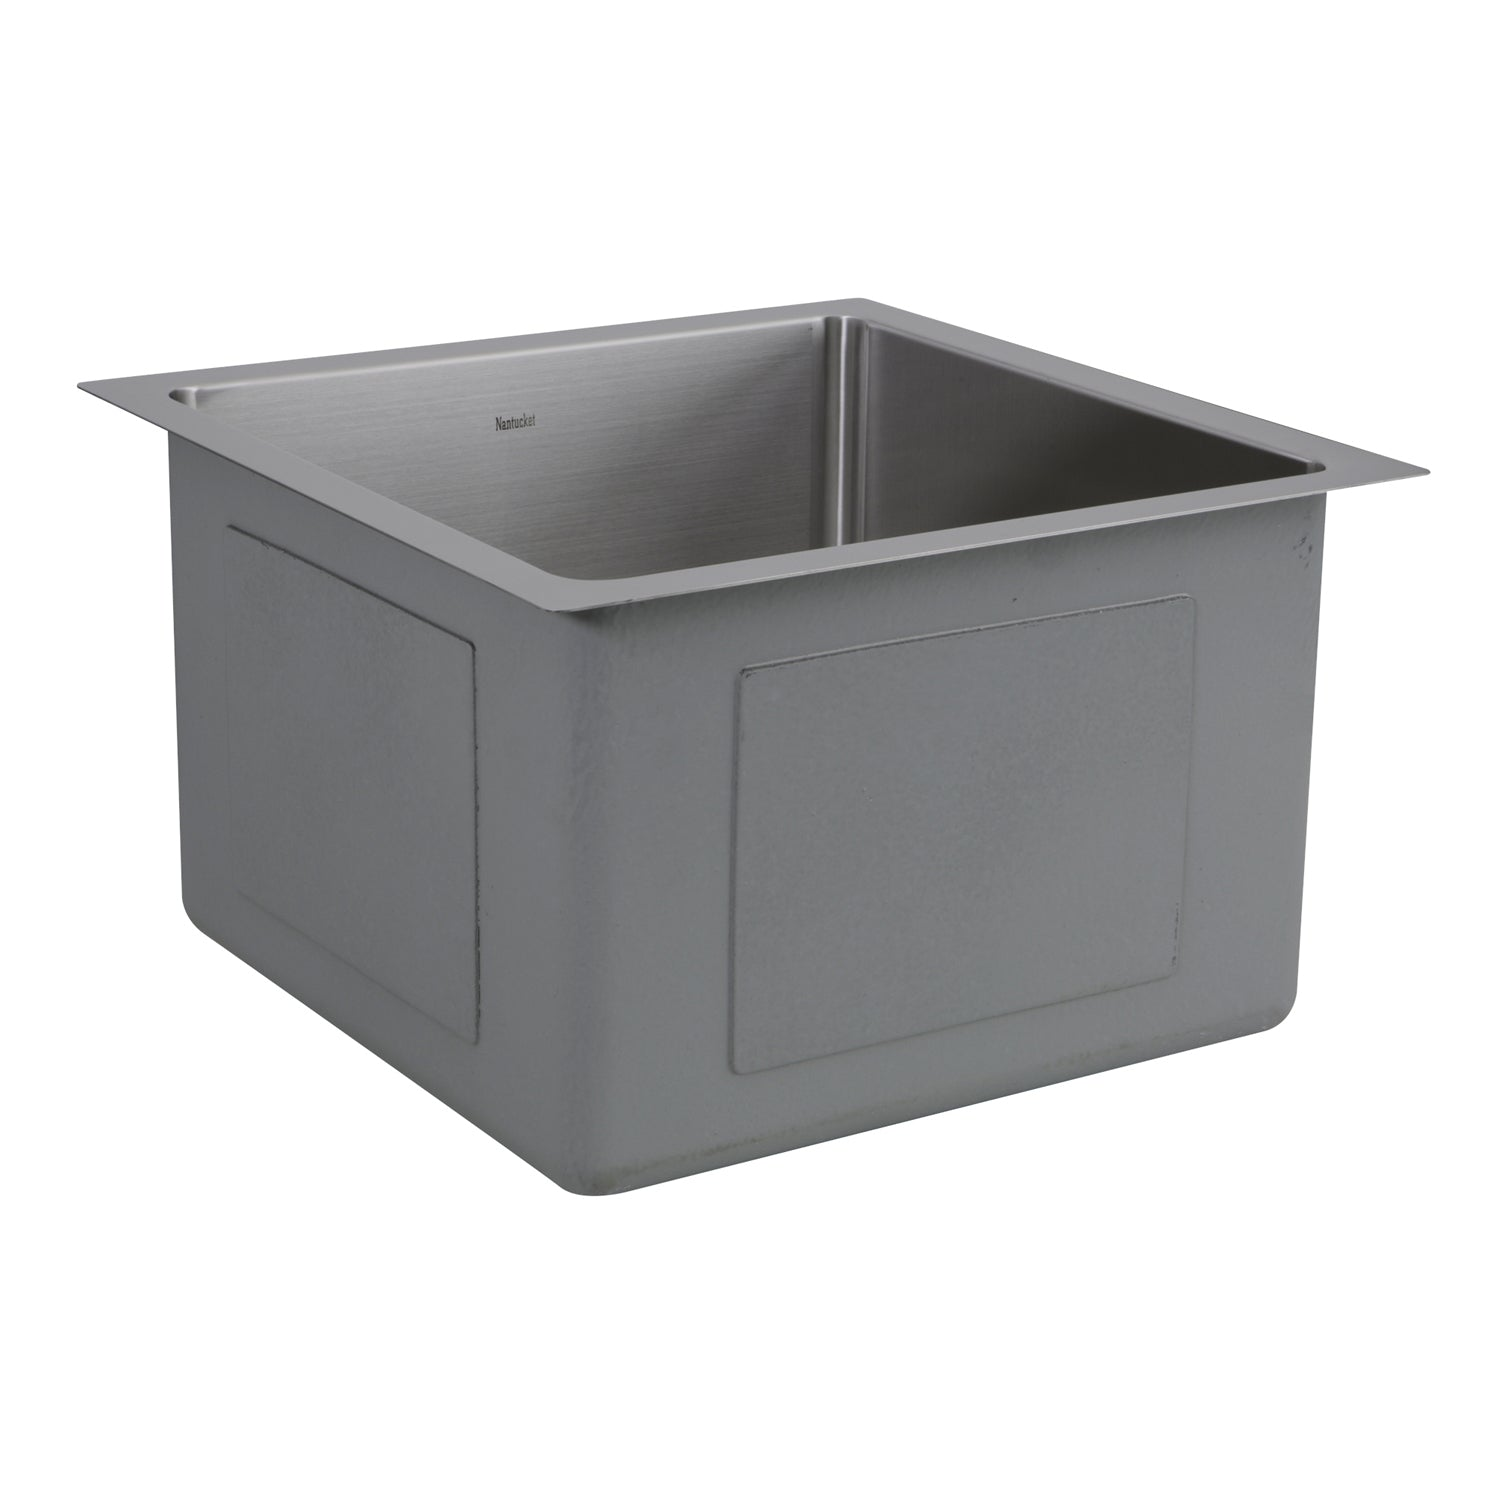 "Nantucket Sinks SR1515 - 15"" Pro Series Square Undermount Small Radius Stainless Steel Bar/Prep Sink"